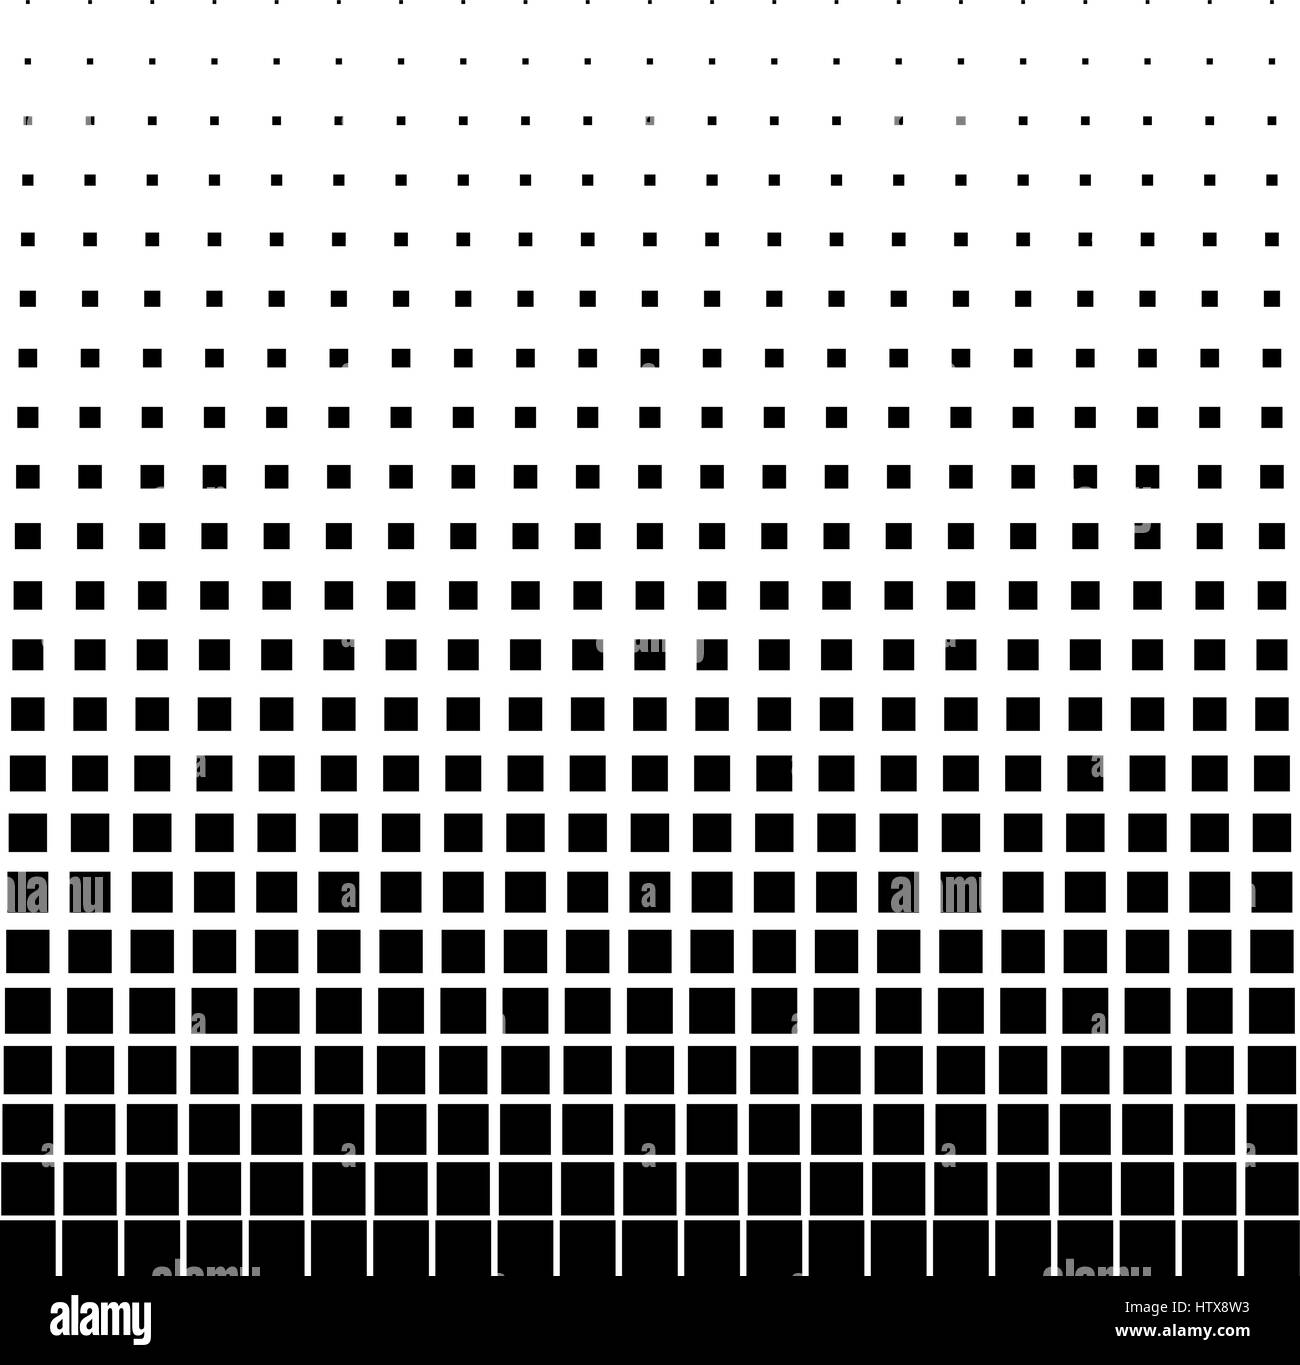 Black Abstract Halftone Square Dot Background Vector Illustration